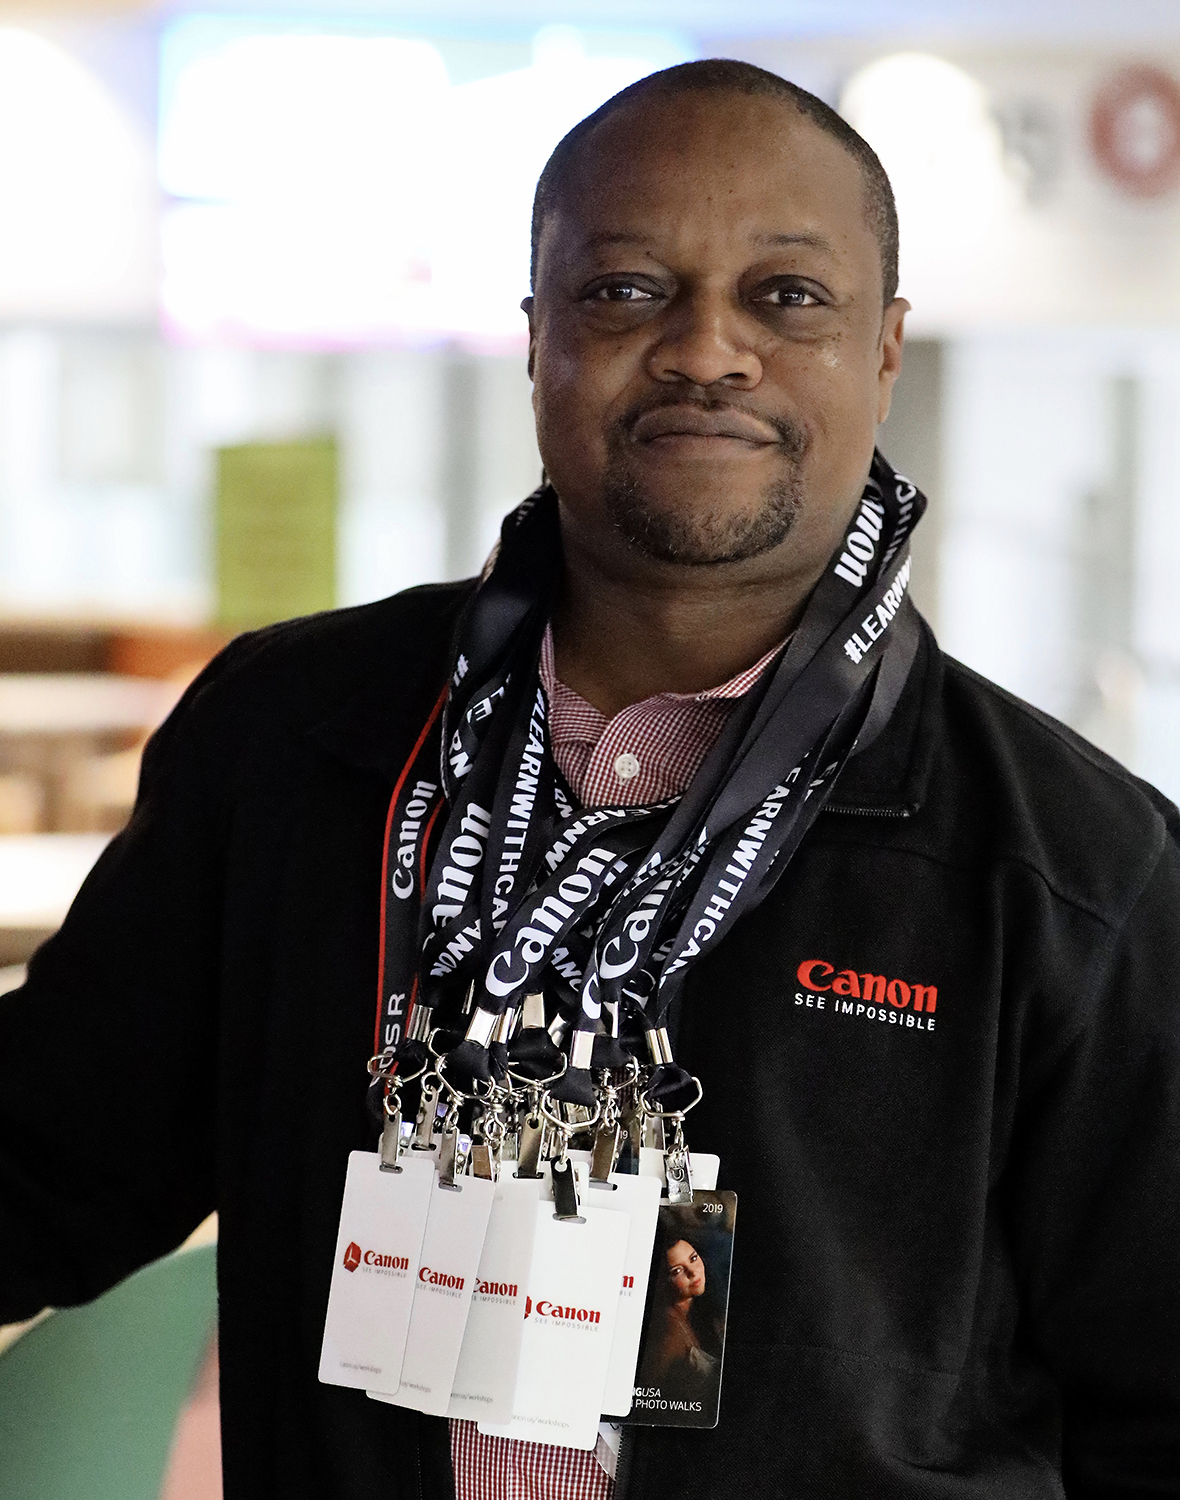 Here I am at a Canon Live Learning photo walk at Imaging USA. I was handing out badges to our attendees.